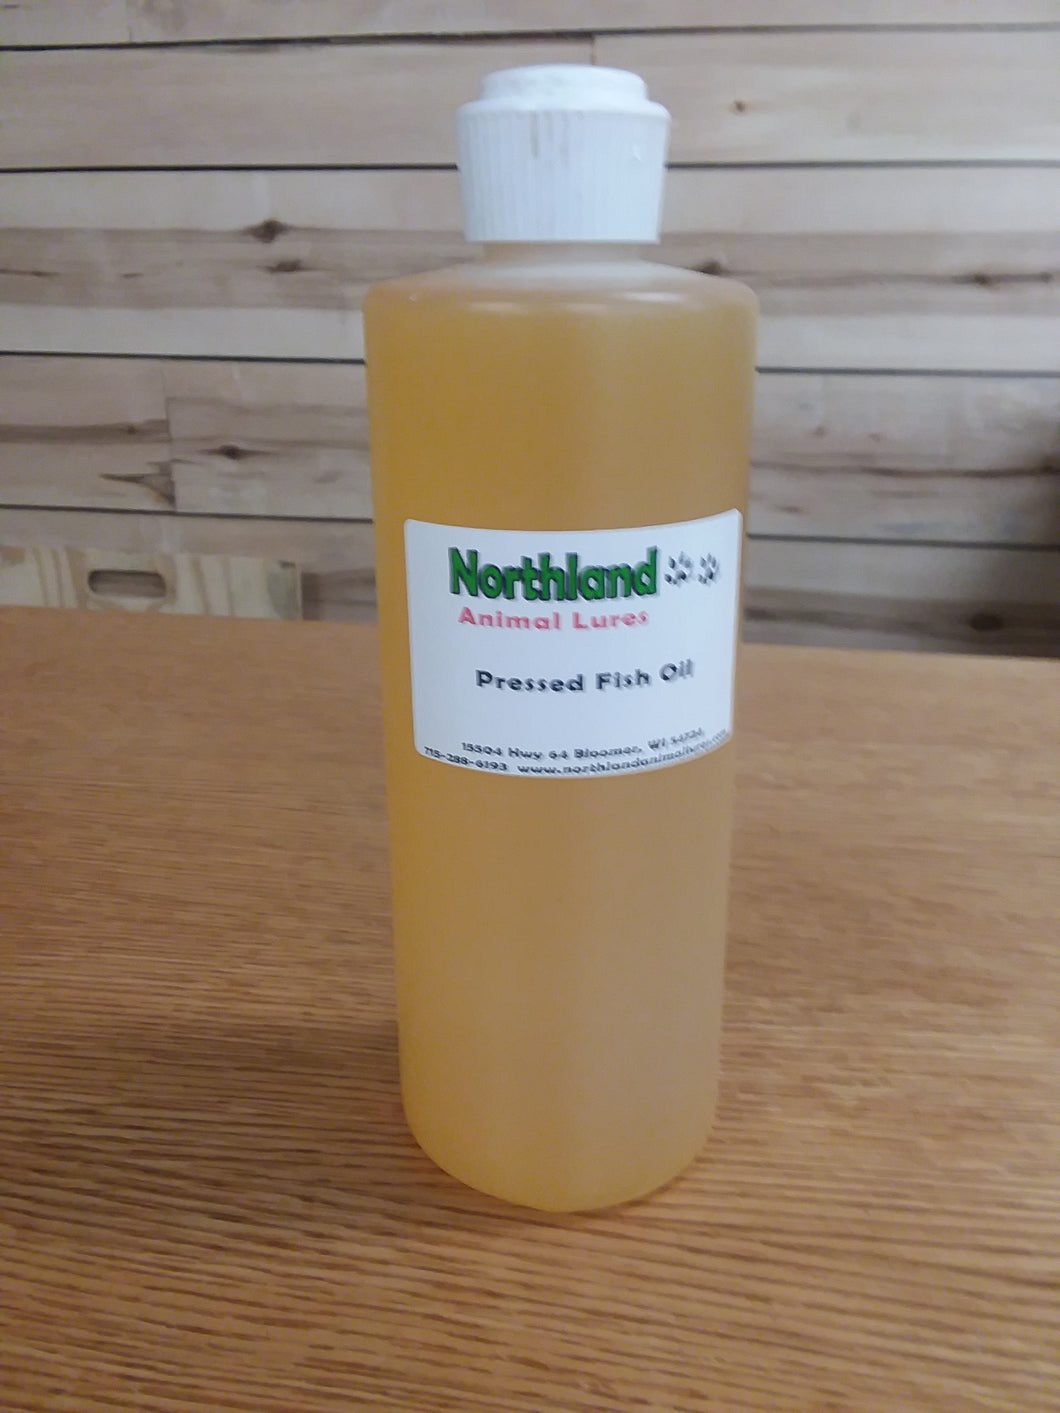 Pressed Fish Oil